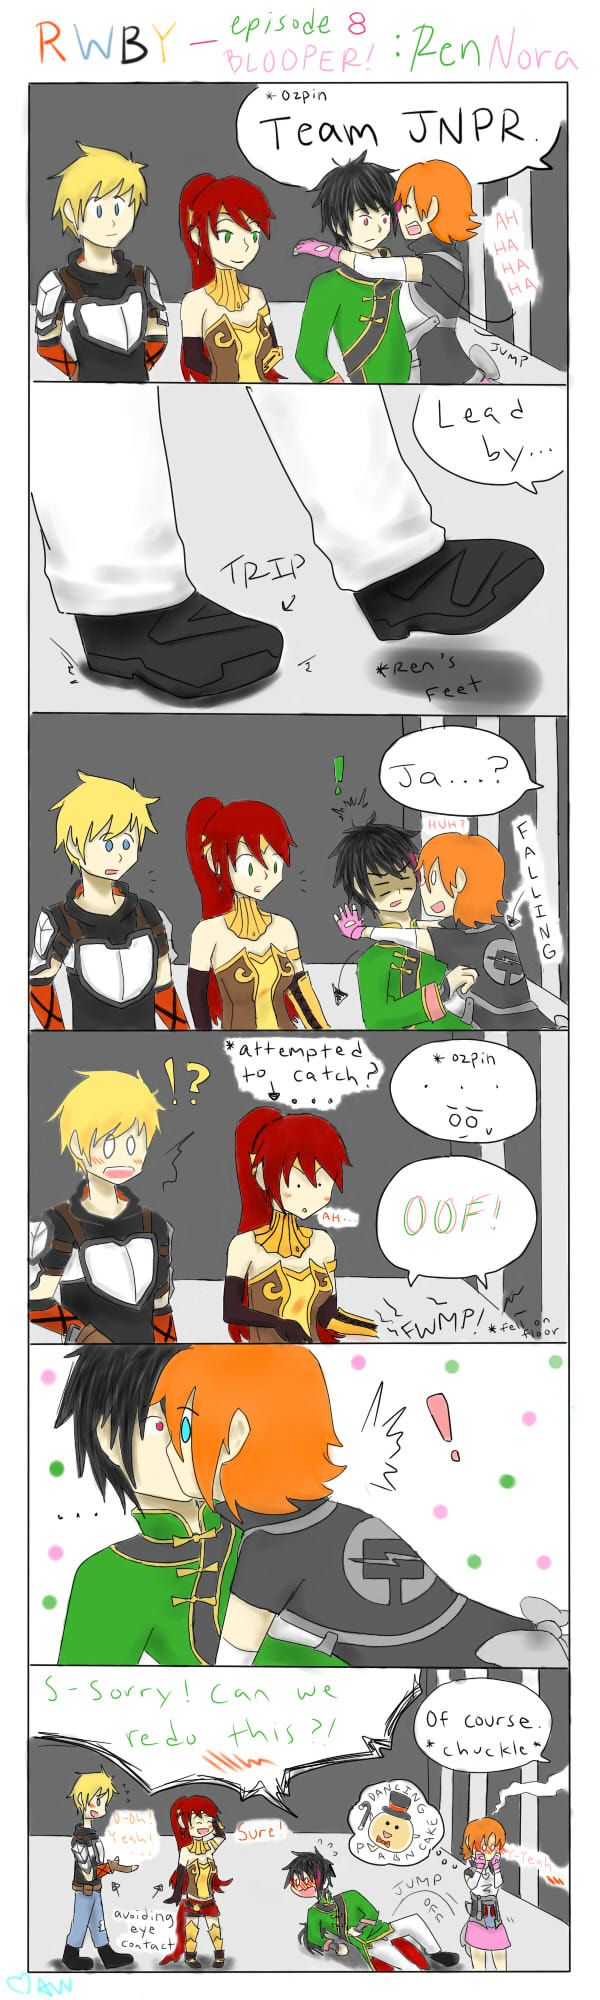 RWBY-episode 8: Nora and Ren Blooper *FANMADE!* by pockynuko12000 on deviantART